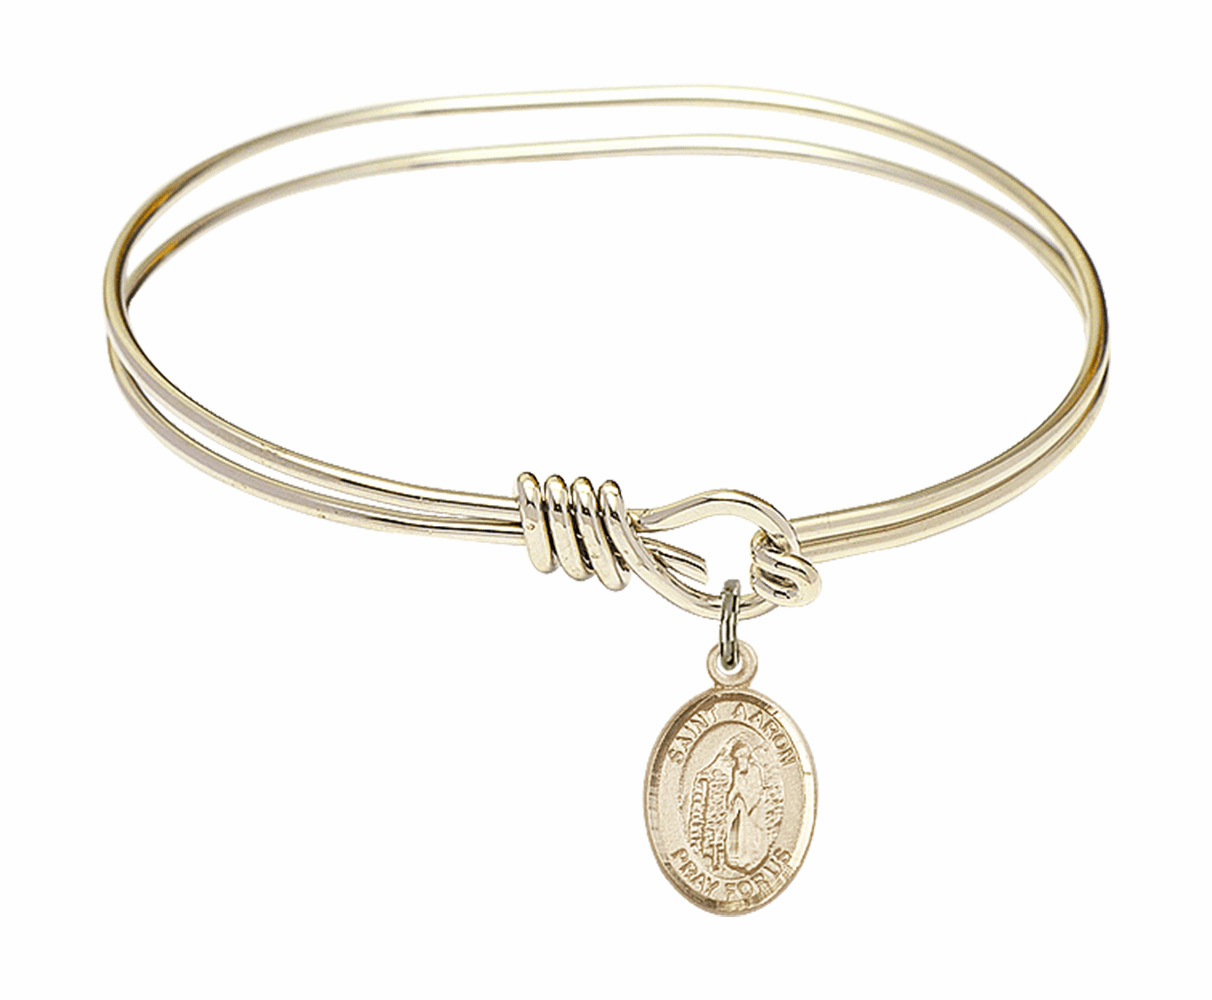 Round Loop St Aaron Bangle 14kt Gold-filled Charm Bracelet by Bliss